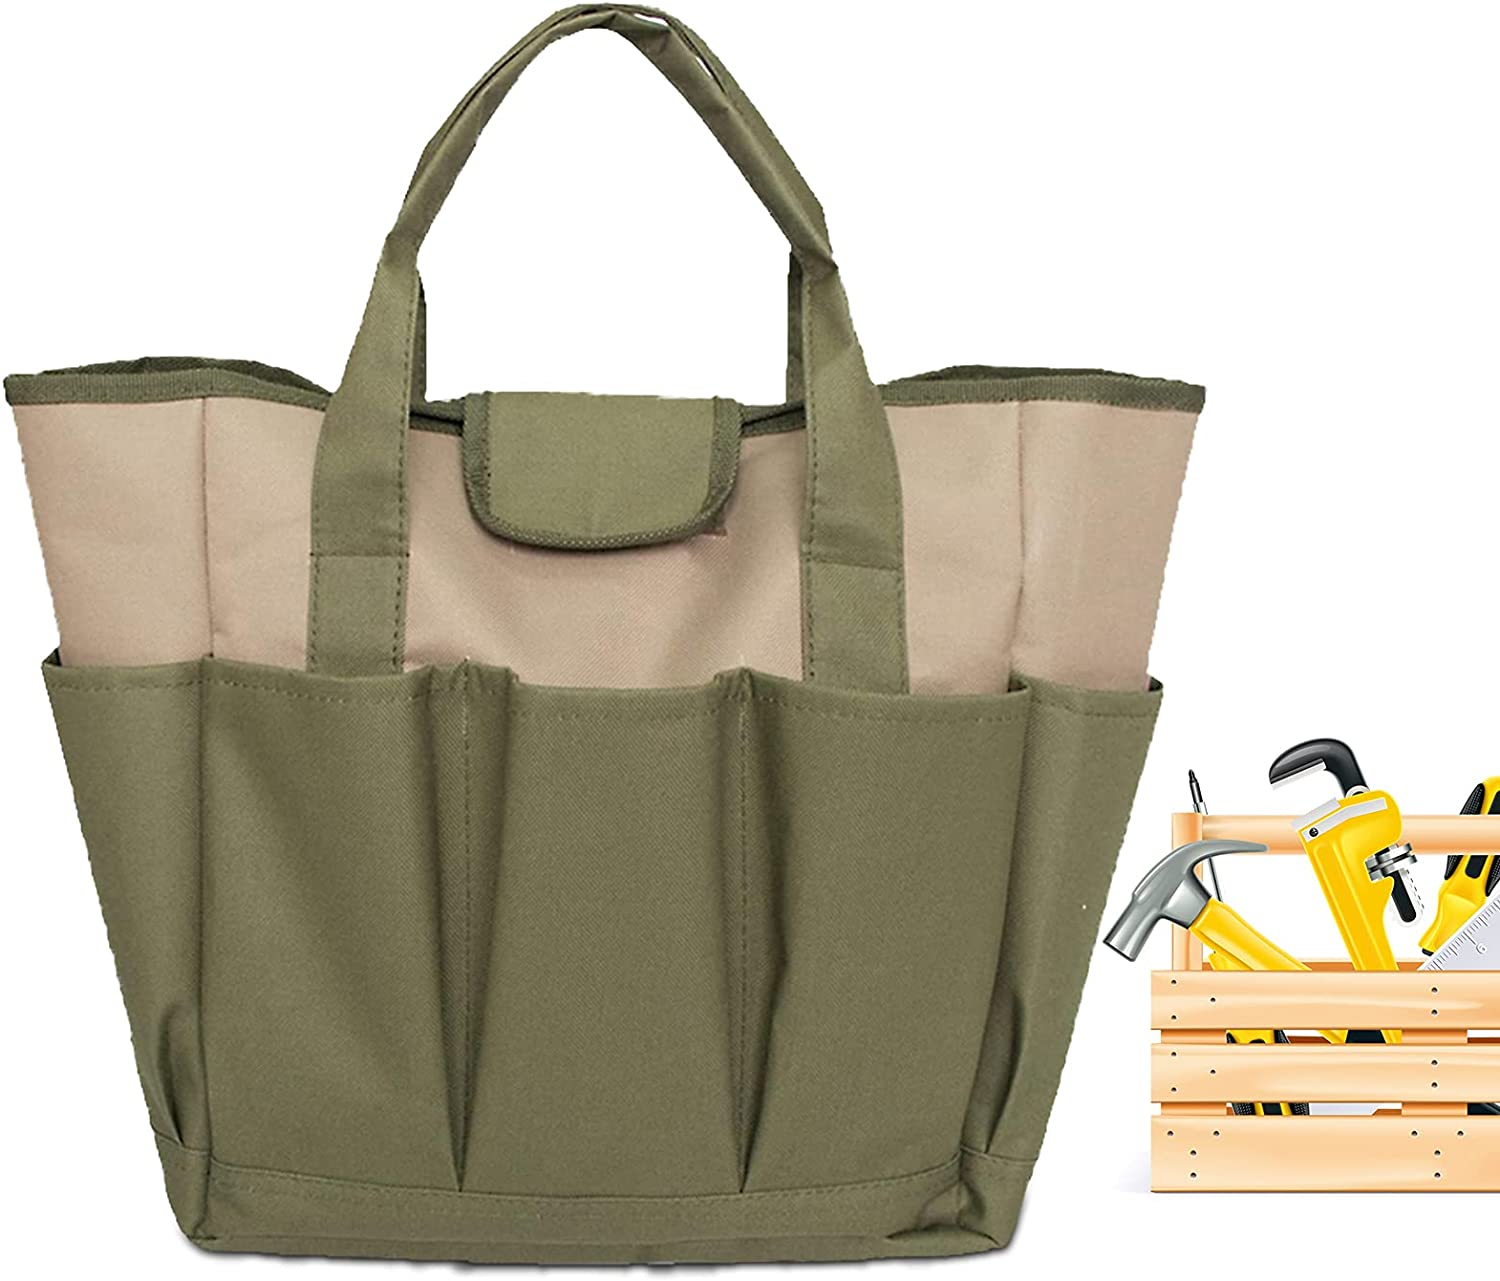 Garden Tool Bag,Canvas Heavy-duty Garden Tote with 8 Deep Pockets Gardening Storage Tote for women Men Garden Plant Tool Set Store Content Bag,for Gardener Regular Size Tools Storage(Army Green)